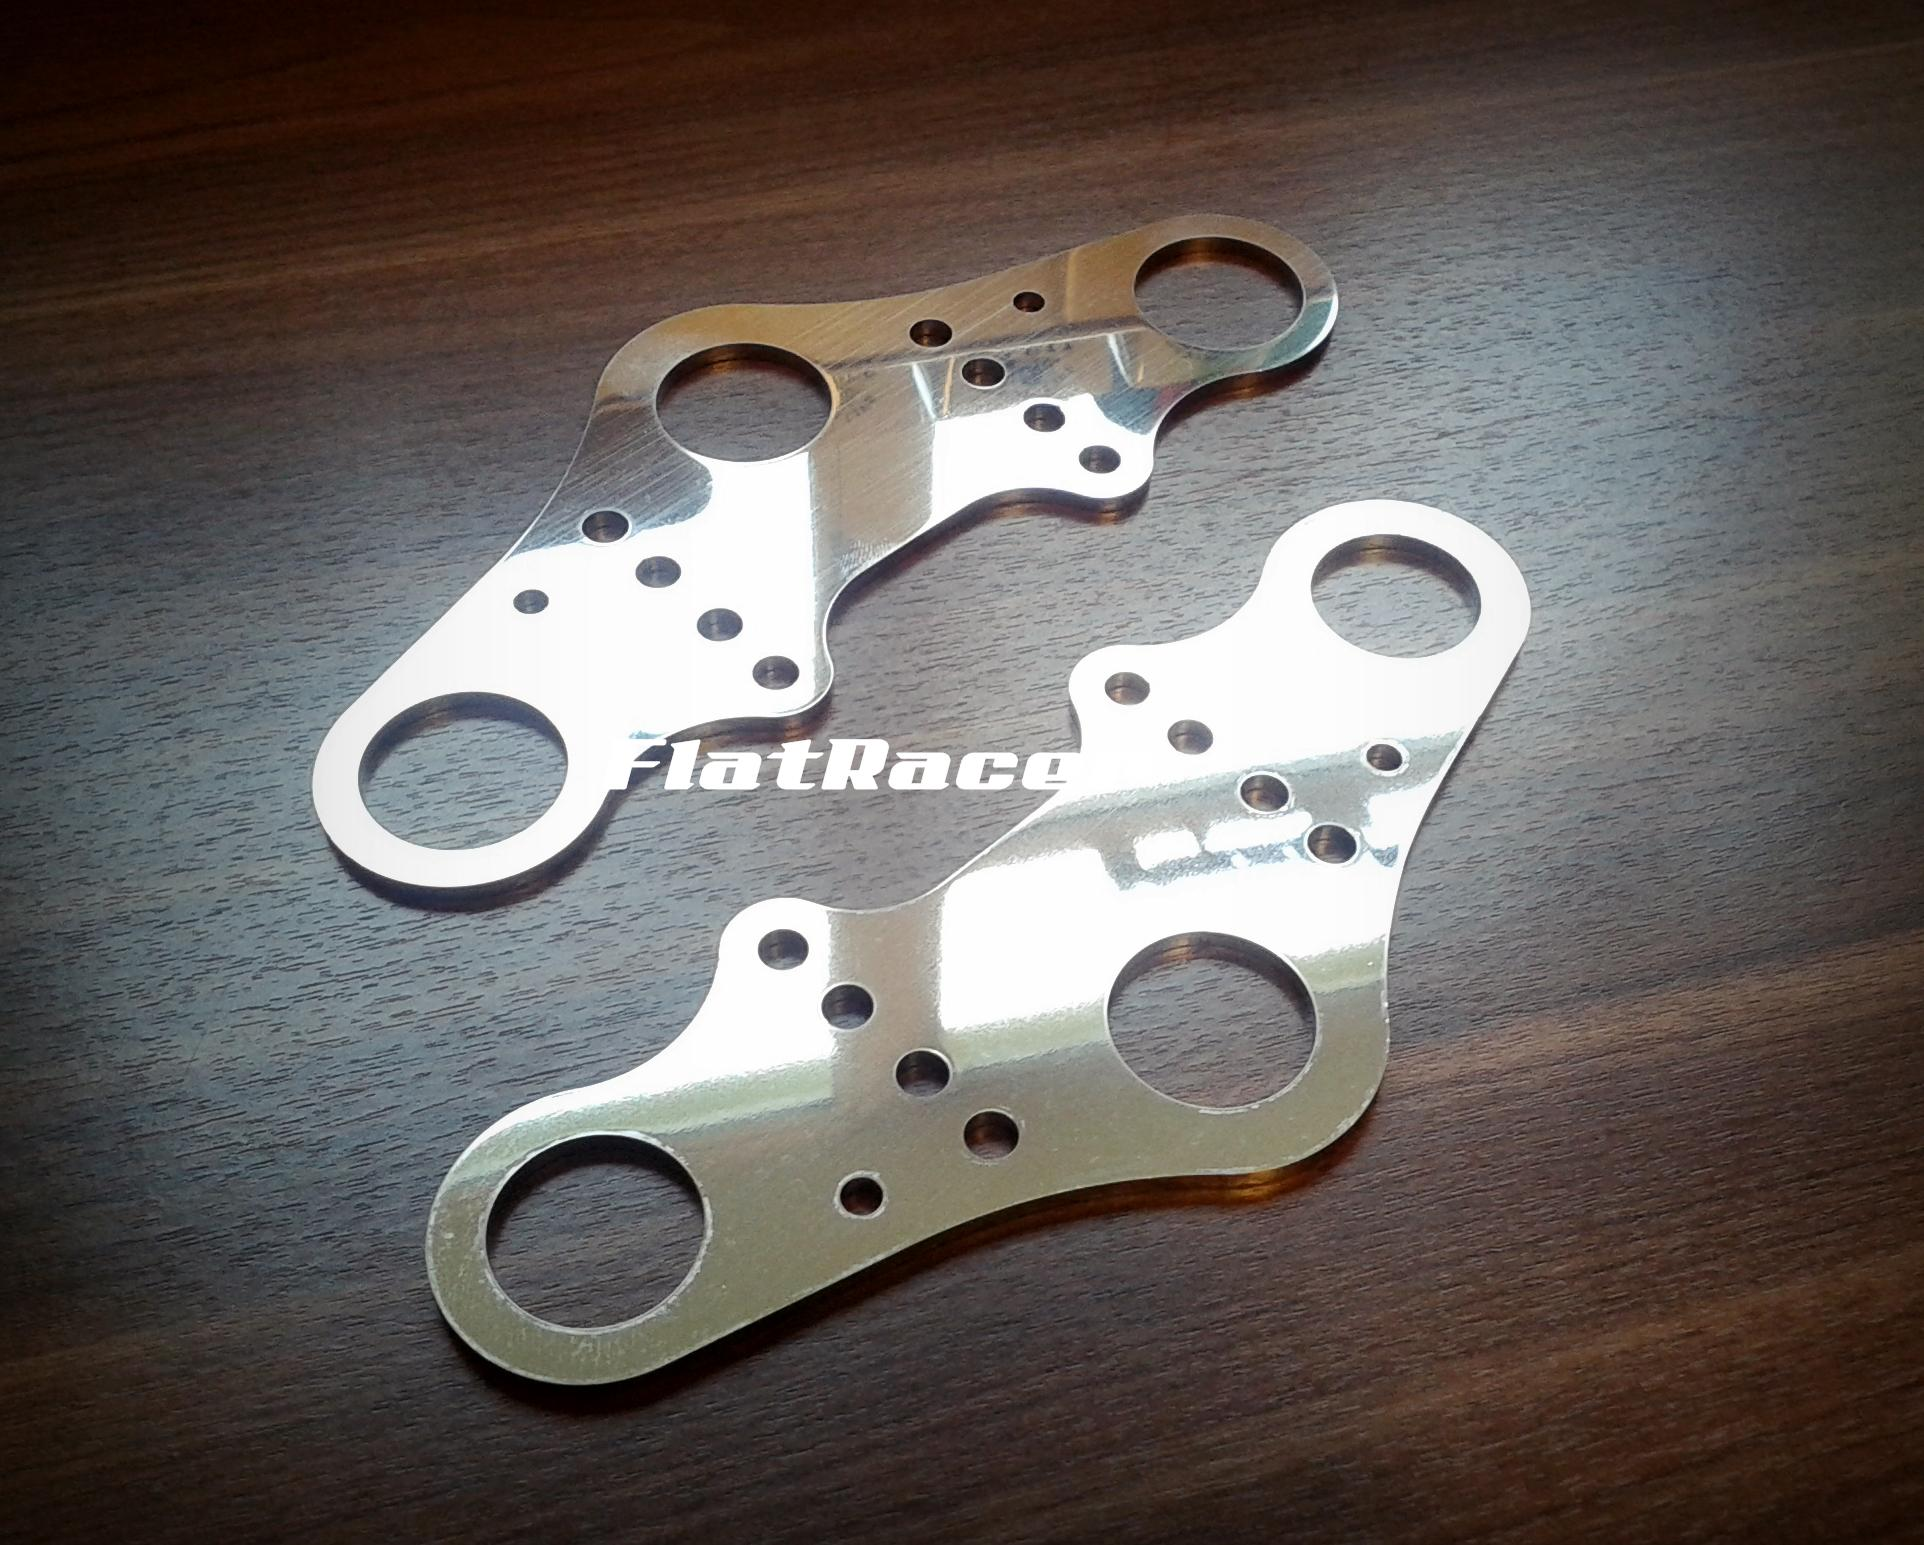 FlatRacer BMW R2v Airhead Boxer /7 Series (76-84) stainless steel top yoke plate